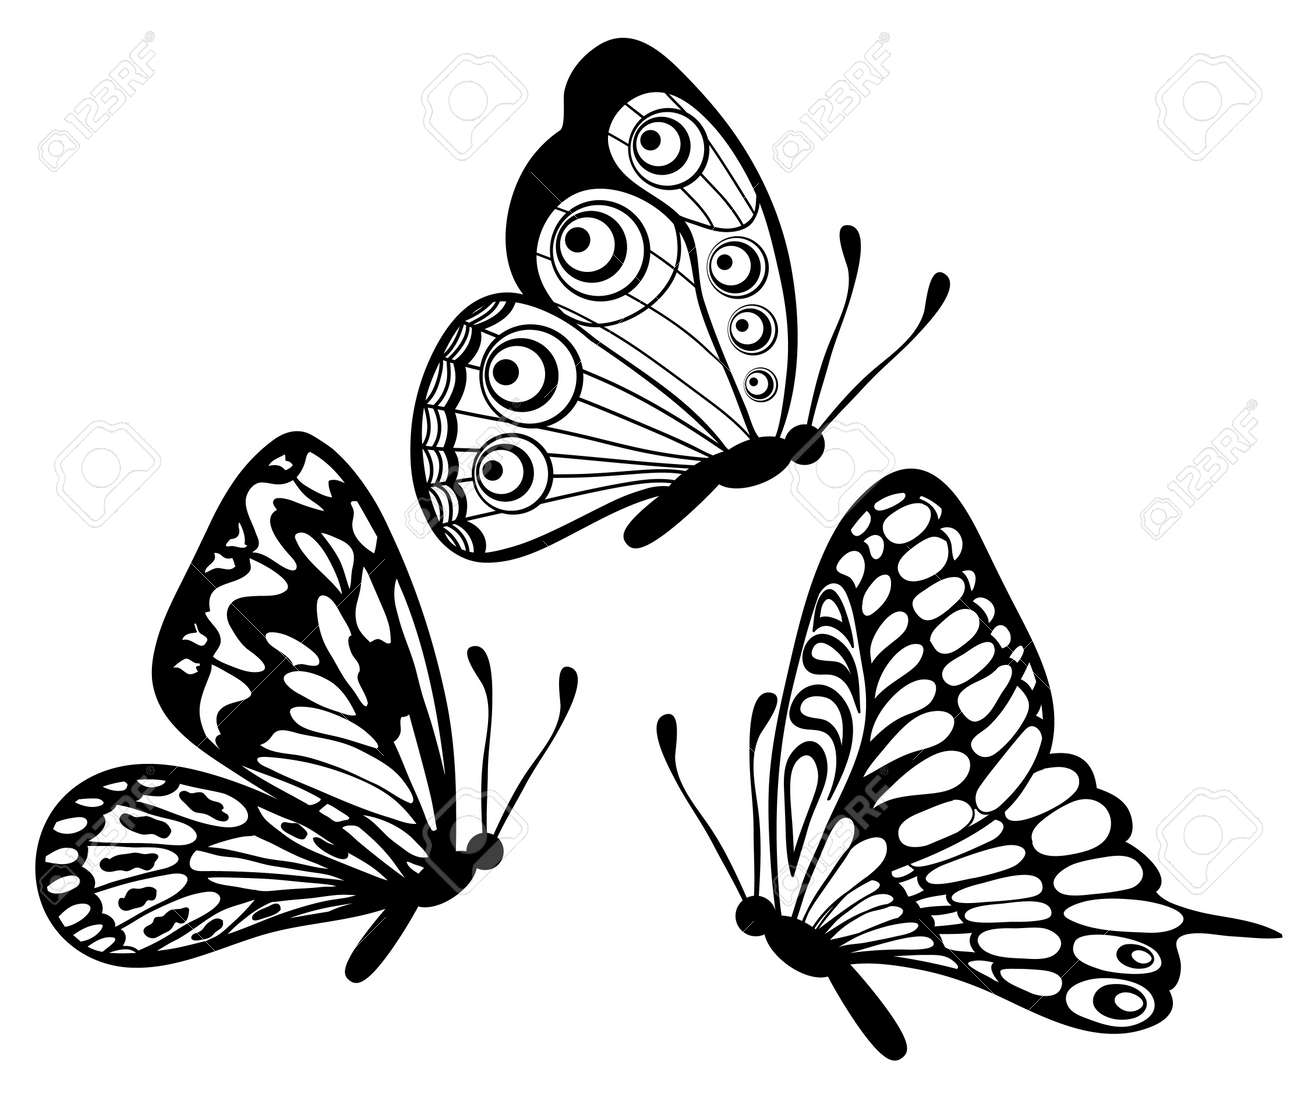 Set Of Beautiful Black And White Butterfly Isolated On White Royalty Free Cliparts Vectors And Stock Illustration Image 18567941